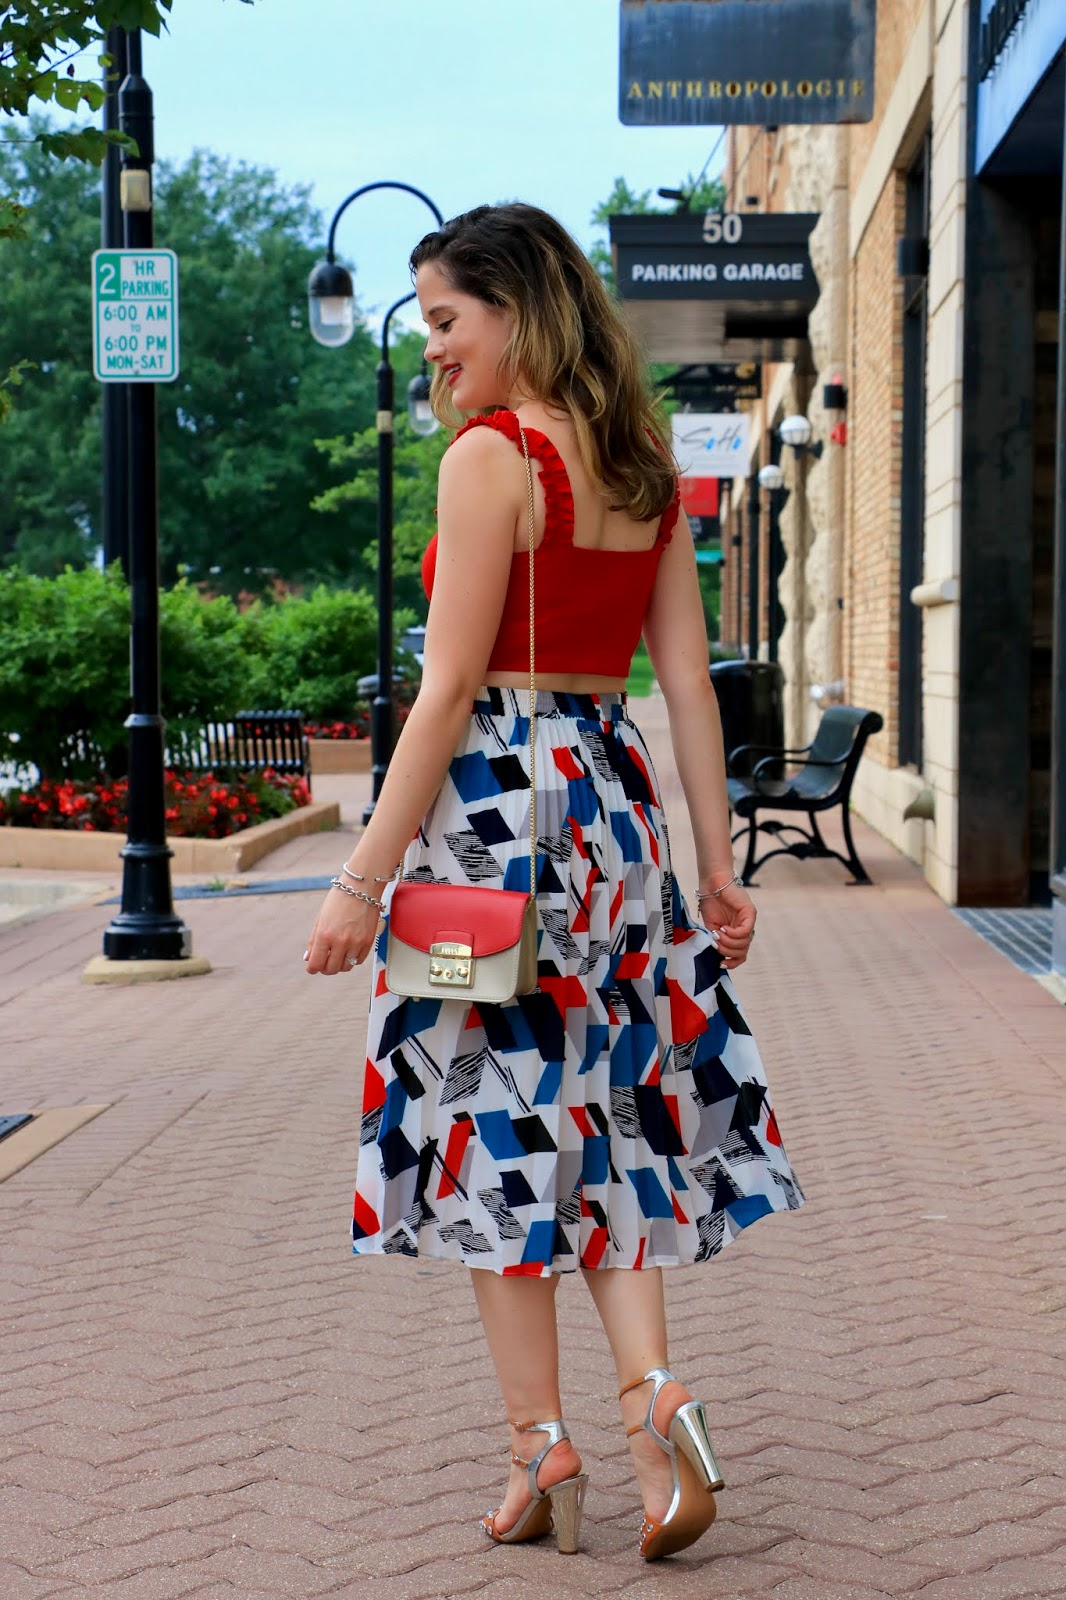 Nyc fashion blogger Kathleen Harper wearing a summer date night outfit of a skirt and crop top.